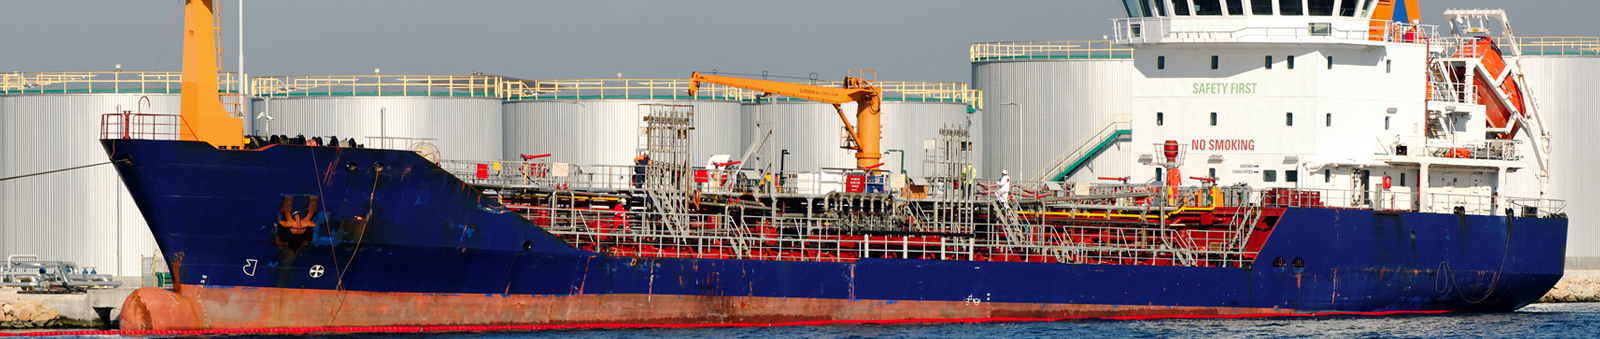 Bunker & Fuel Cargo Procurement in Middle East, Fuel Oil Middle East